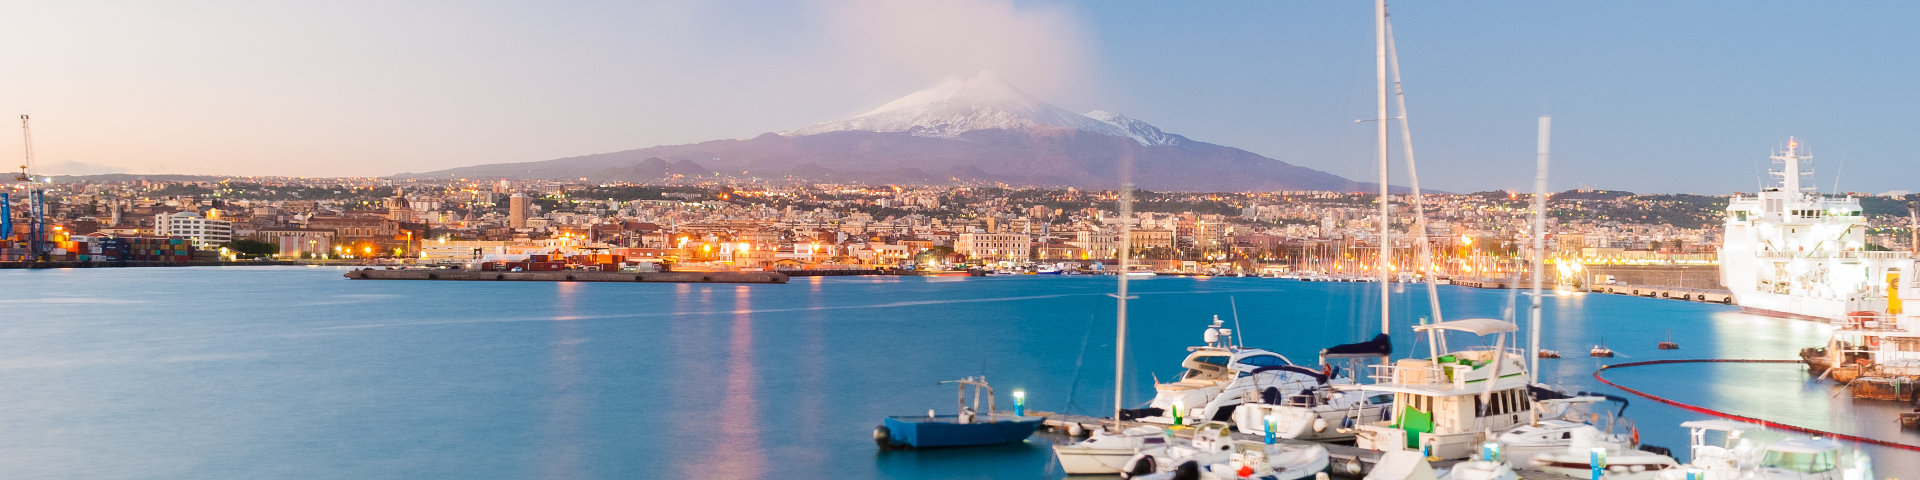 Hero catania mt. etna background